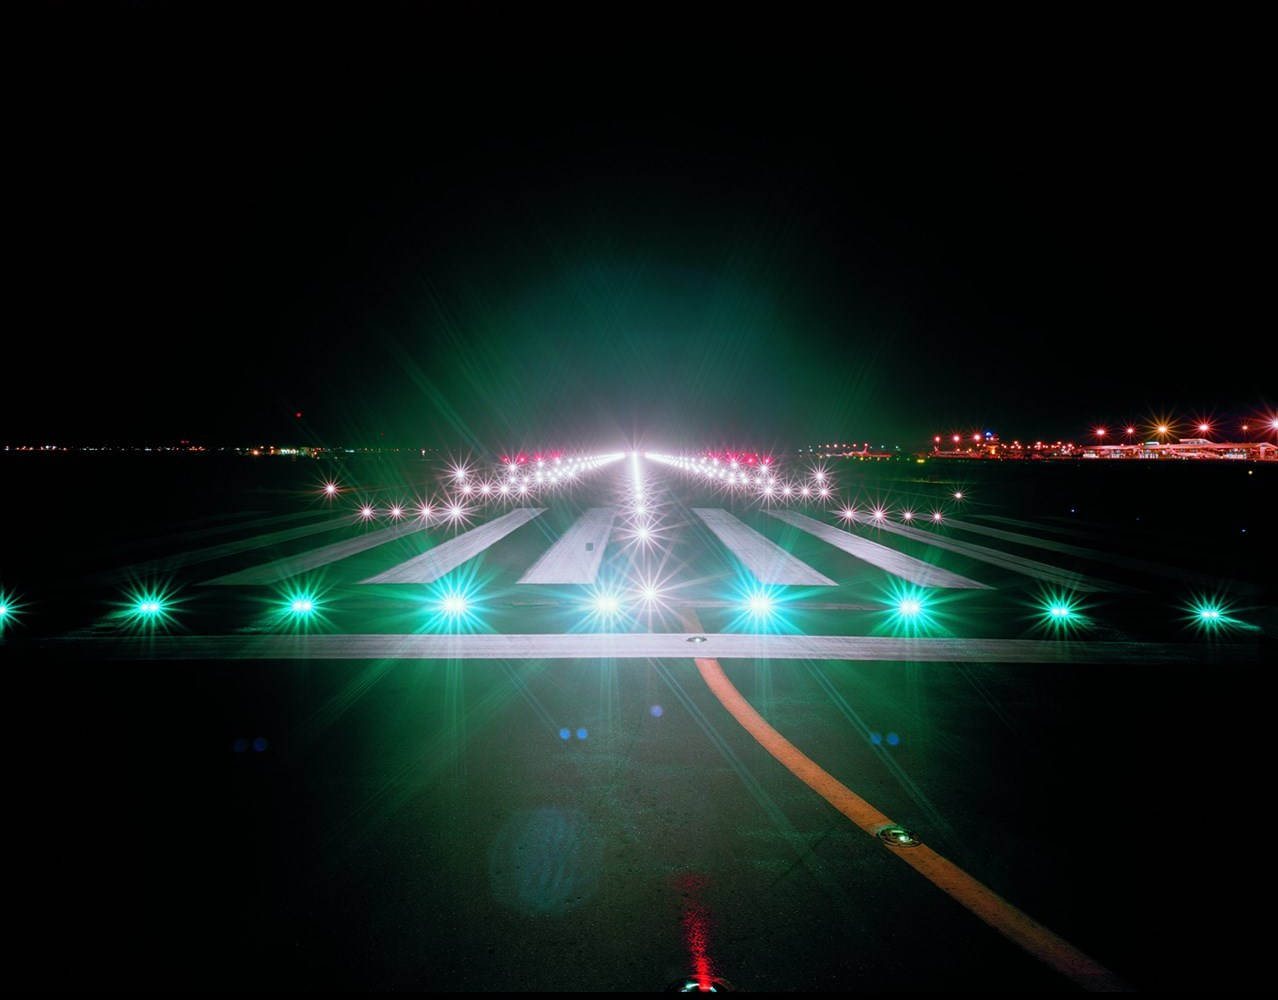 2nd Exhibition Portuguese Speaking Countries | Edgar Martins /Lights at the threshold of the runway, Faro Airport (from the series Approaches)/ 2006